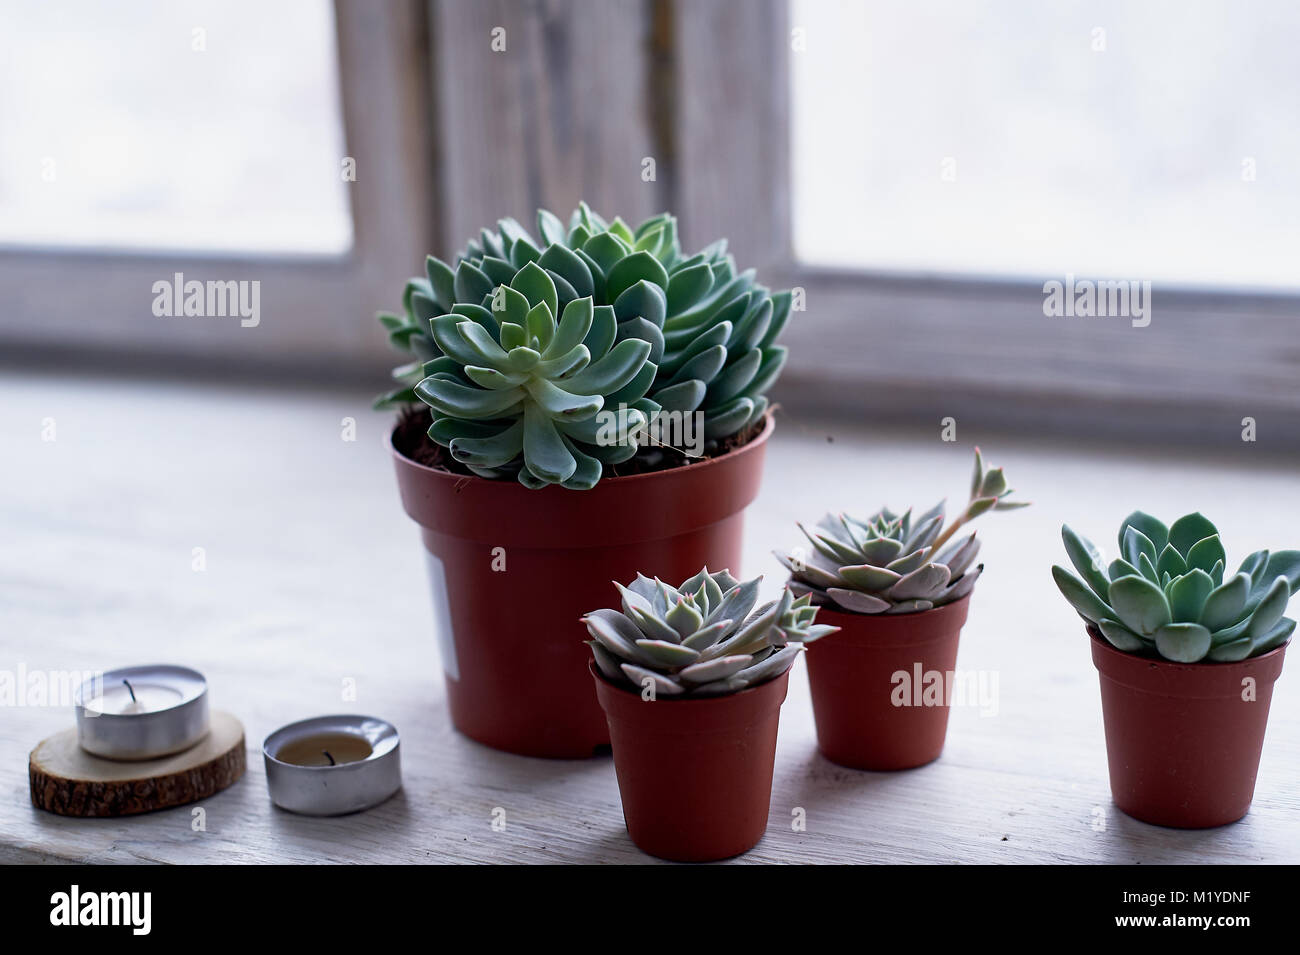 Succulents In A Minimalist Style House Plants For Interior Stock